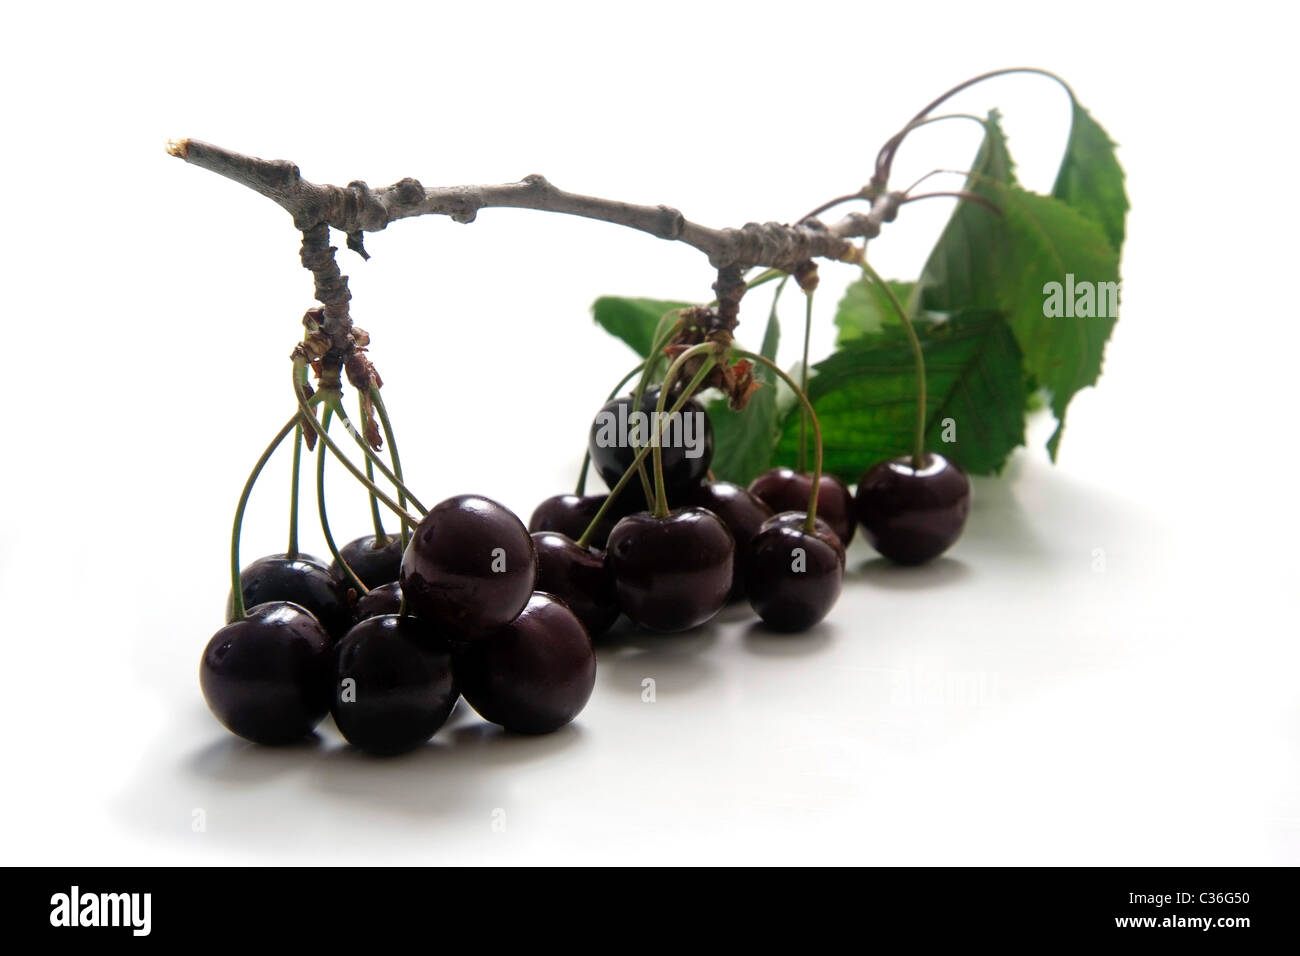 Cherry variety Kassins Frühe with twig and leaves - Stock Image